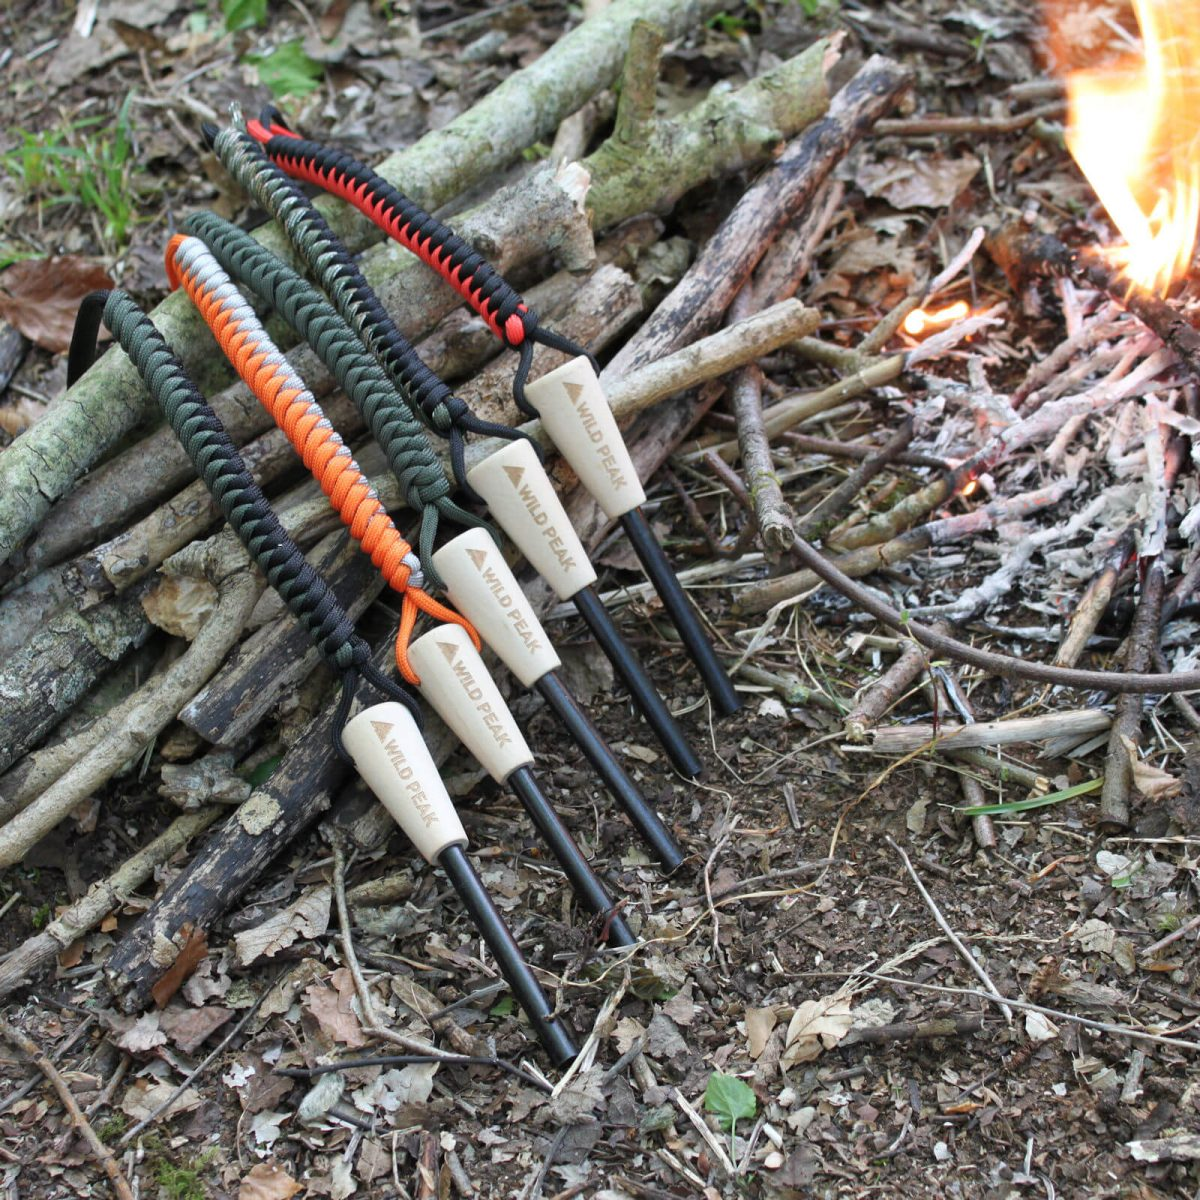 5 x 70MM x 8MM HIGH QUALITY FLINT /& STRIKER IDEAL FOR SURVIVAL BUSHCRAFT SCOUTS